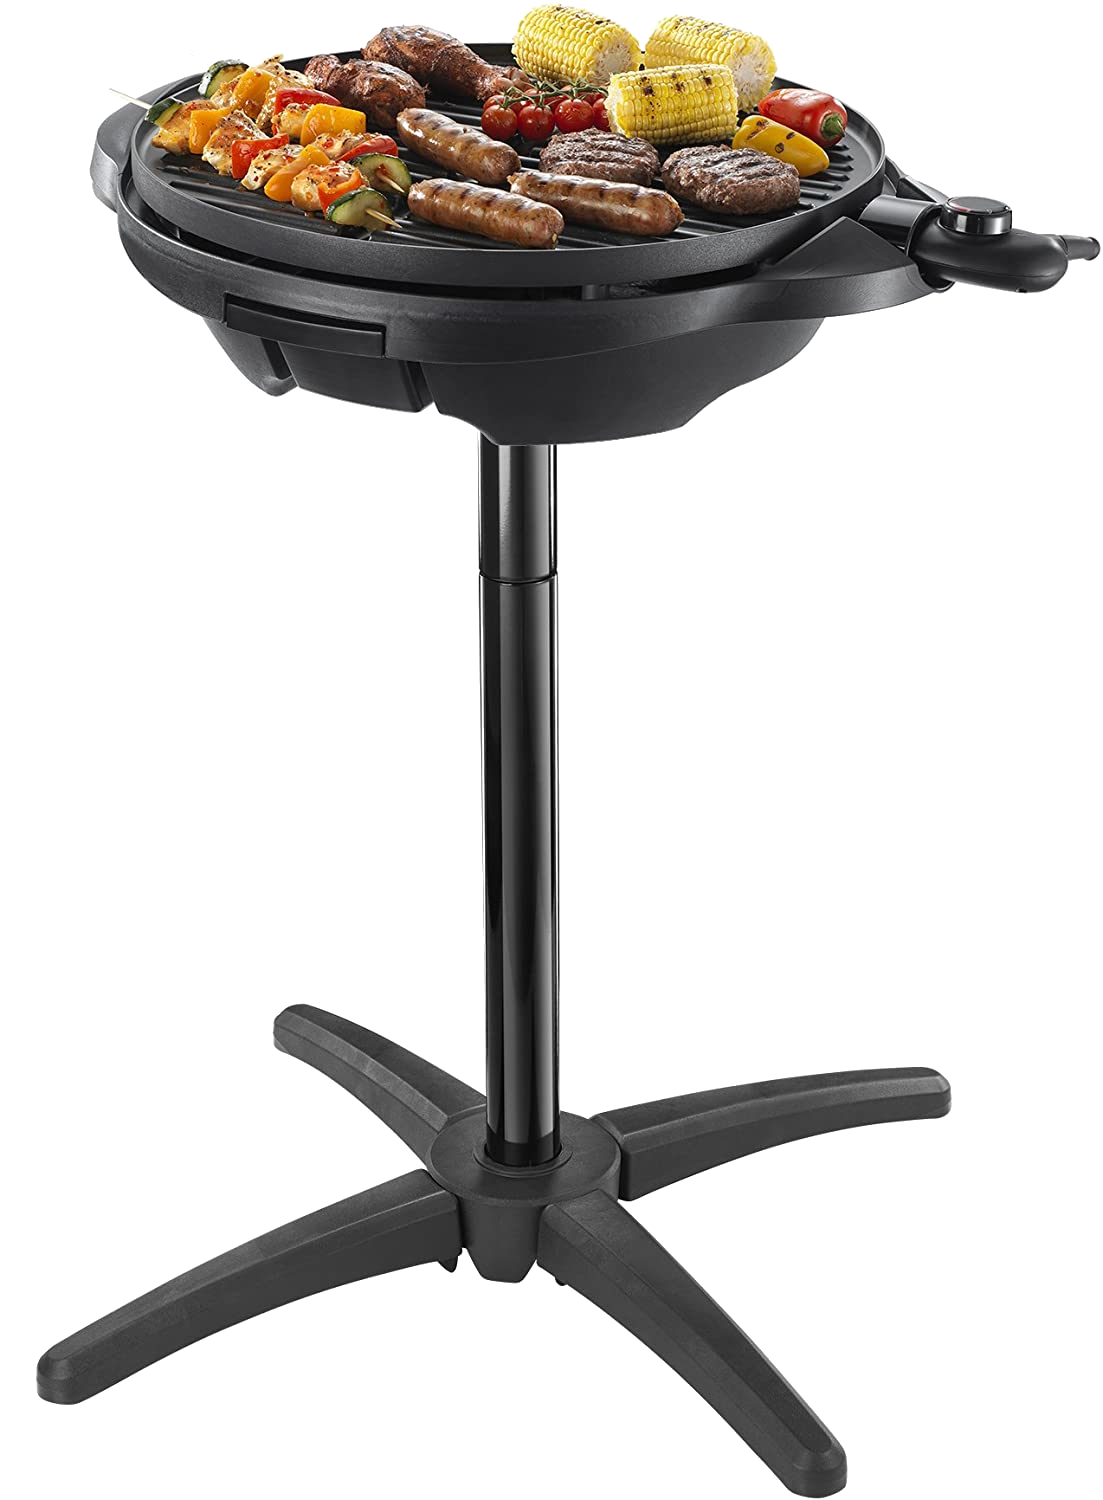 George Foreman Electric BBQ Grill on stand 2